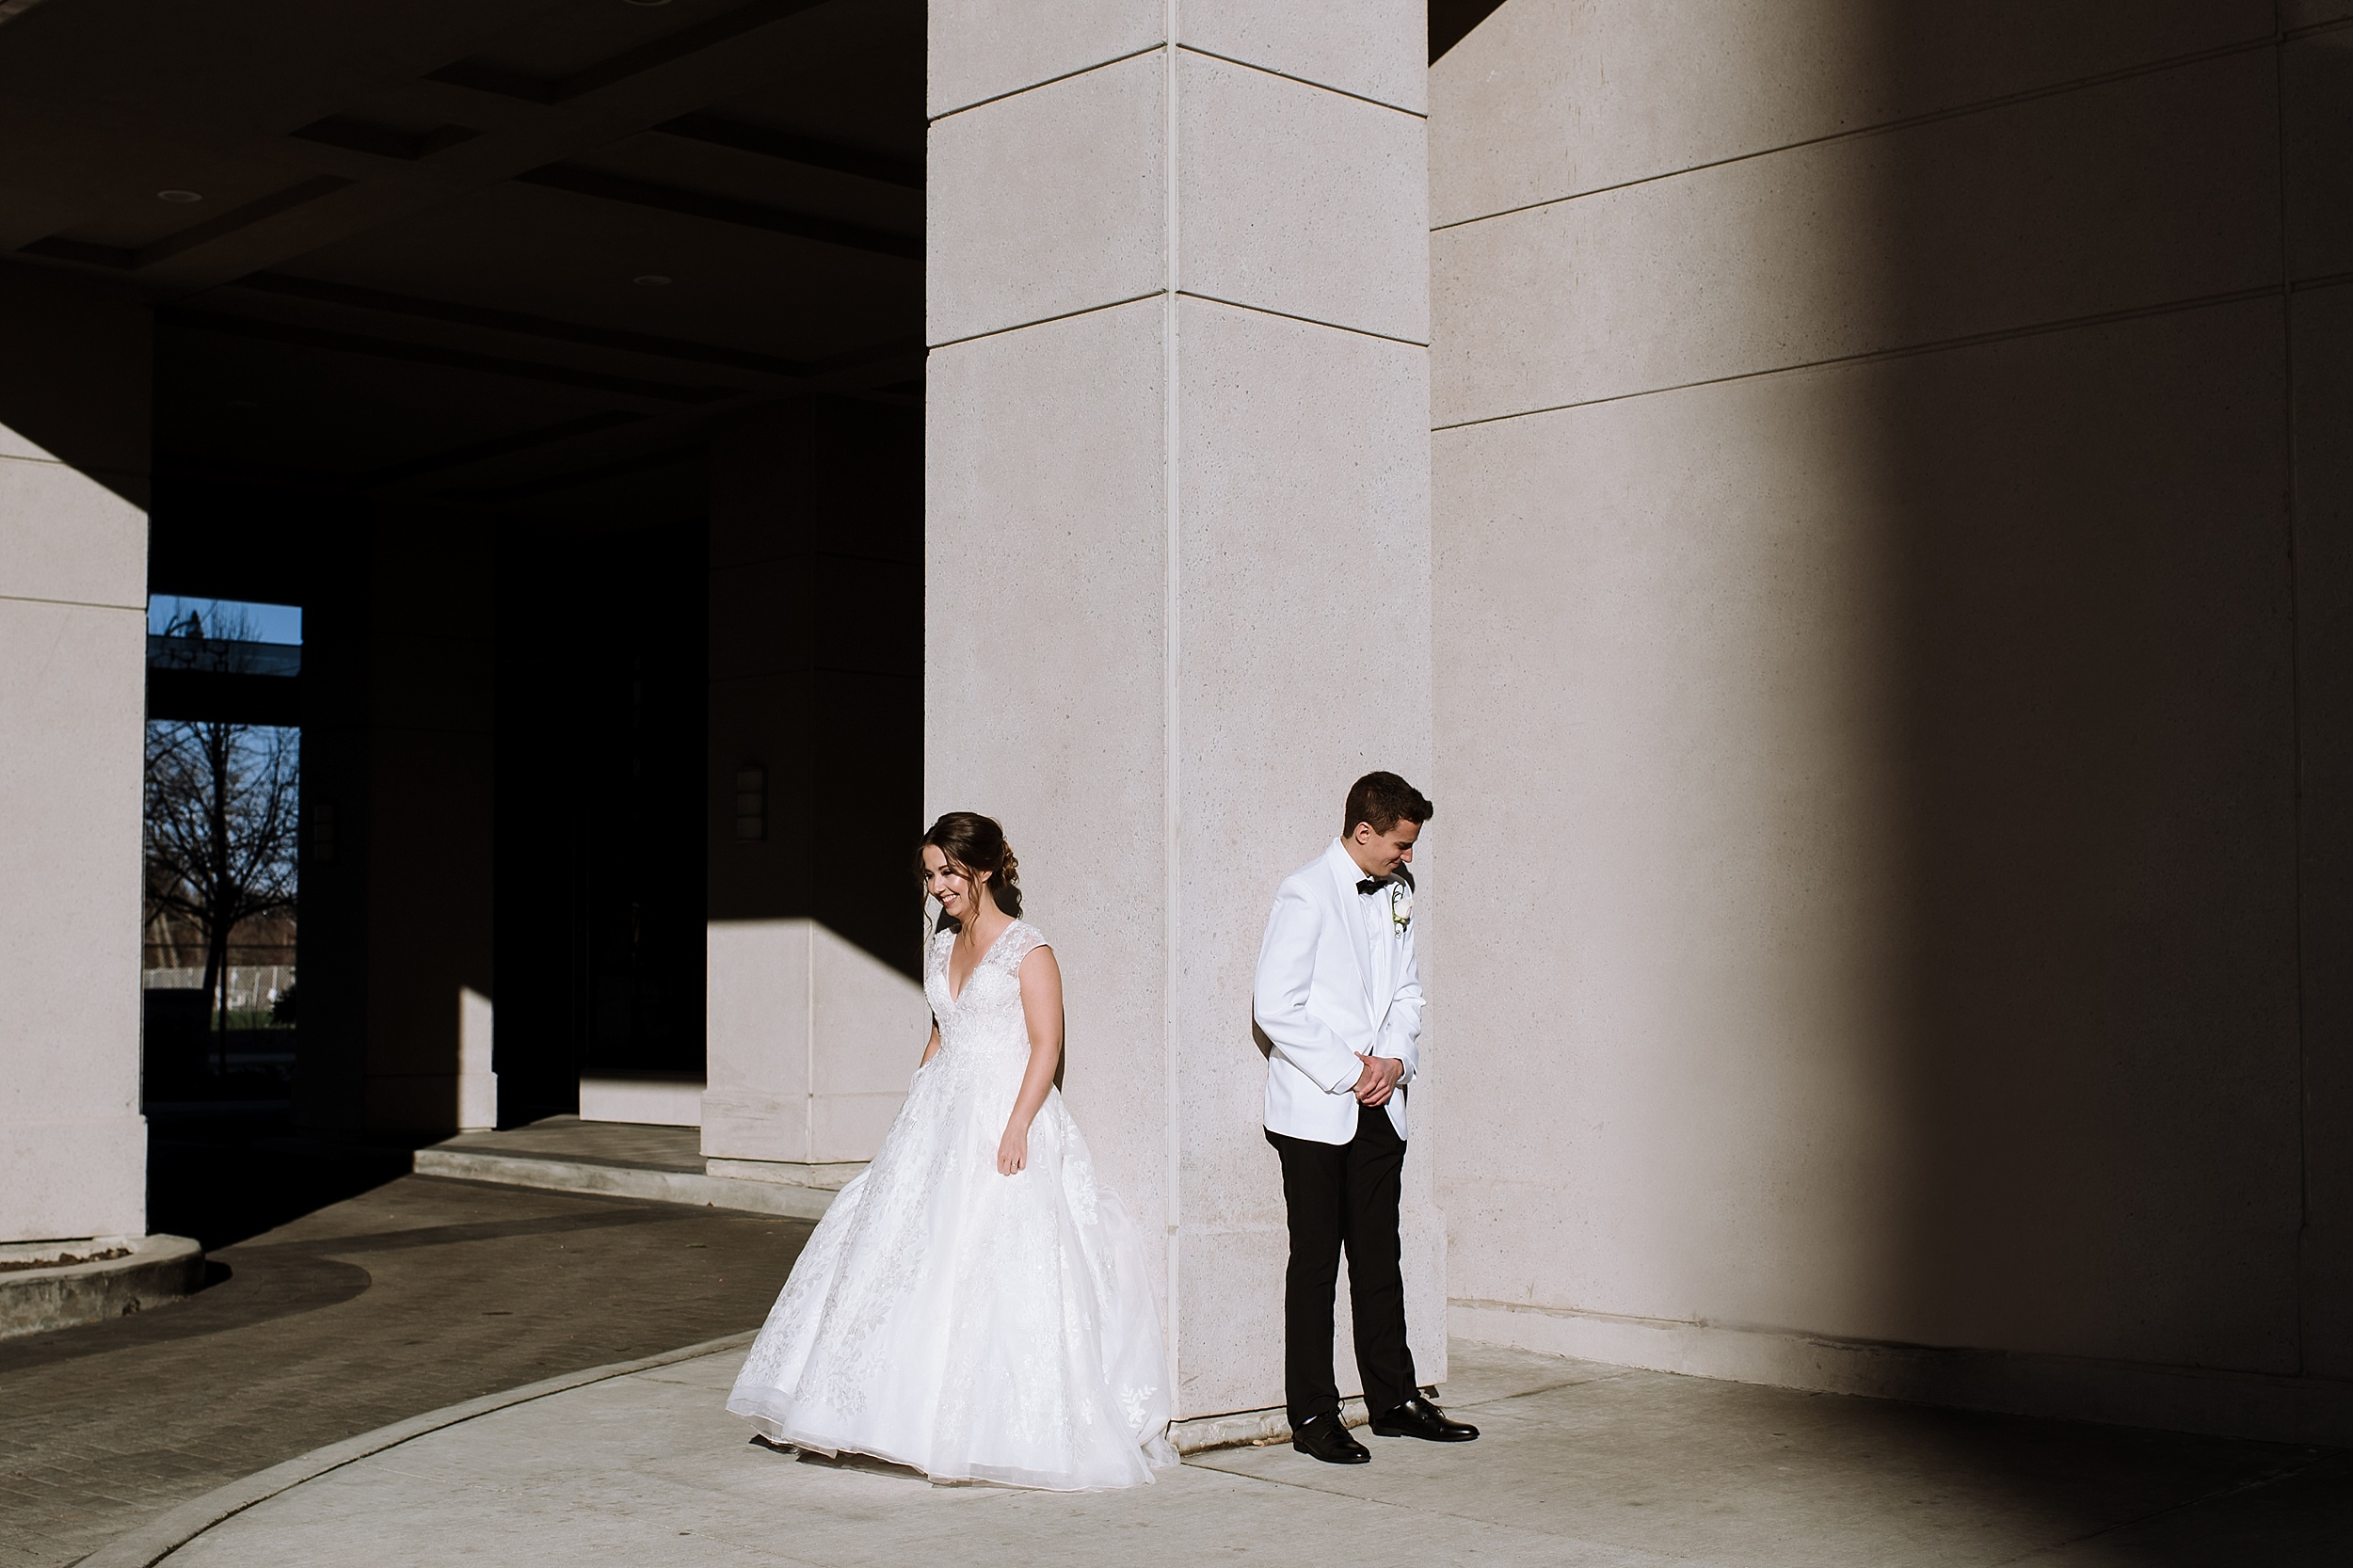 Jam_Factory_Wedding_Toronto_Winter_Wedding_Photographer_0007.jpg